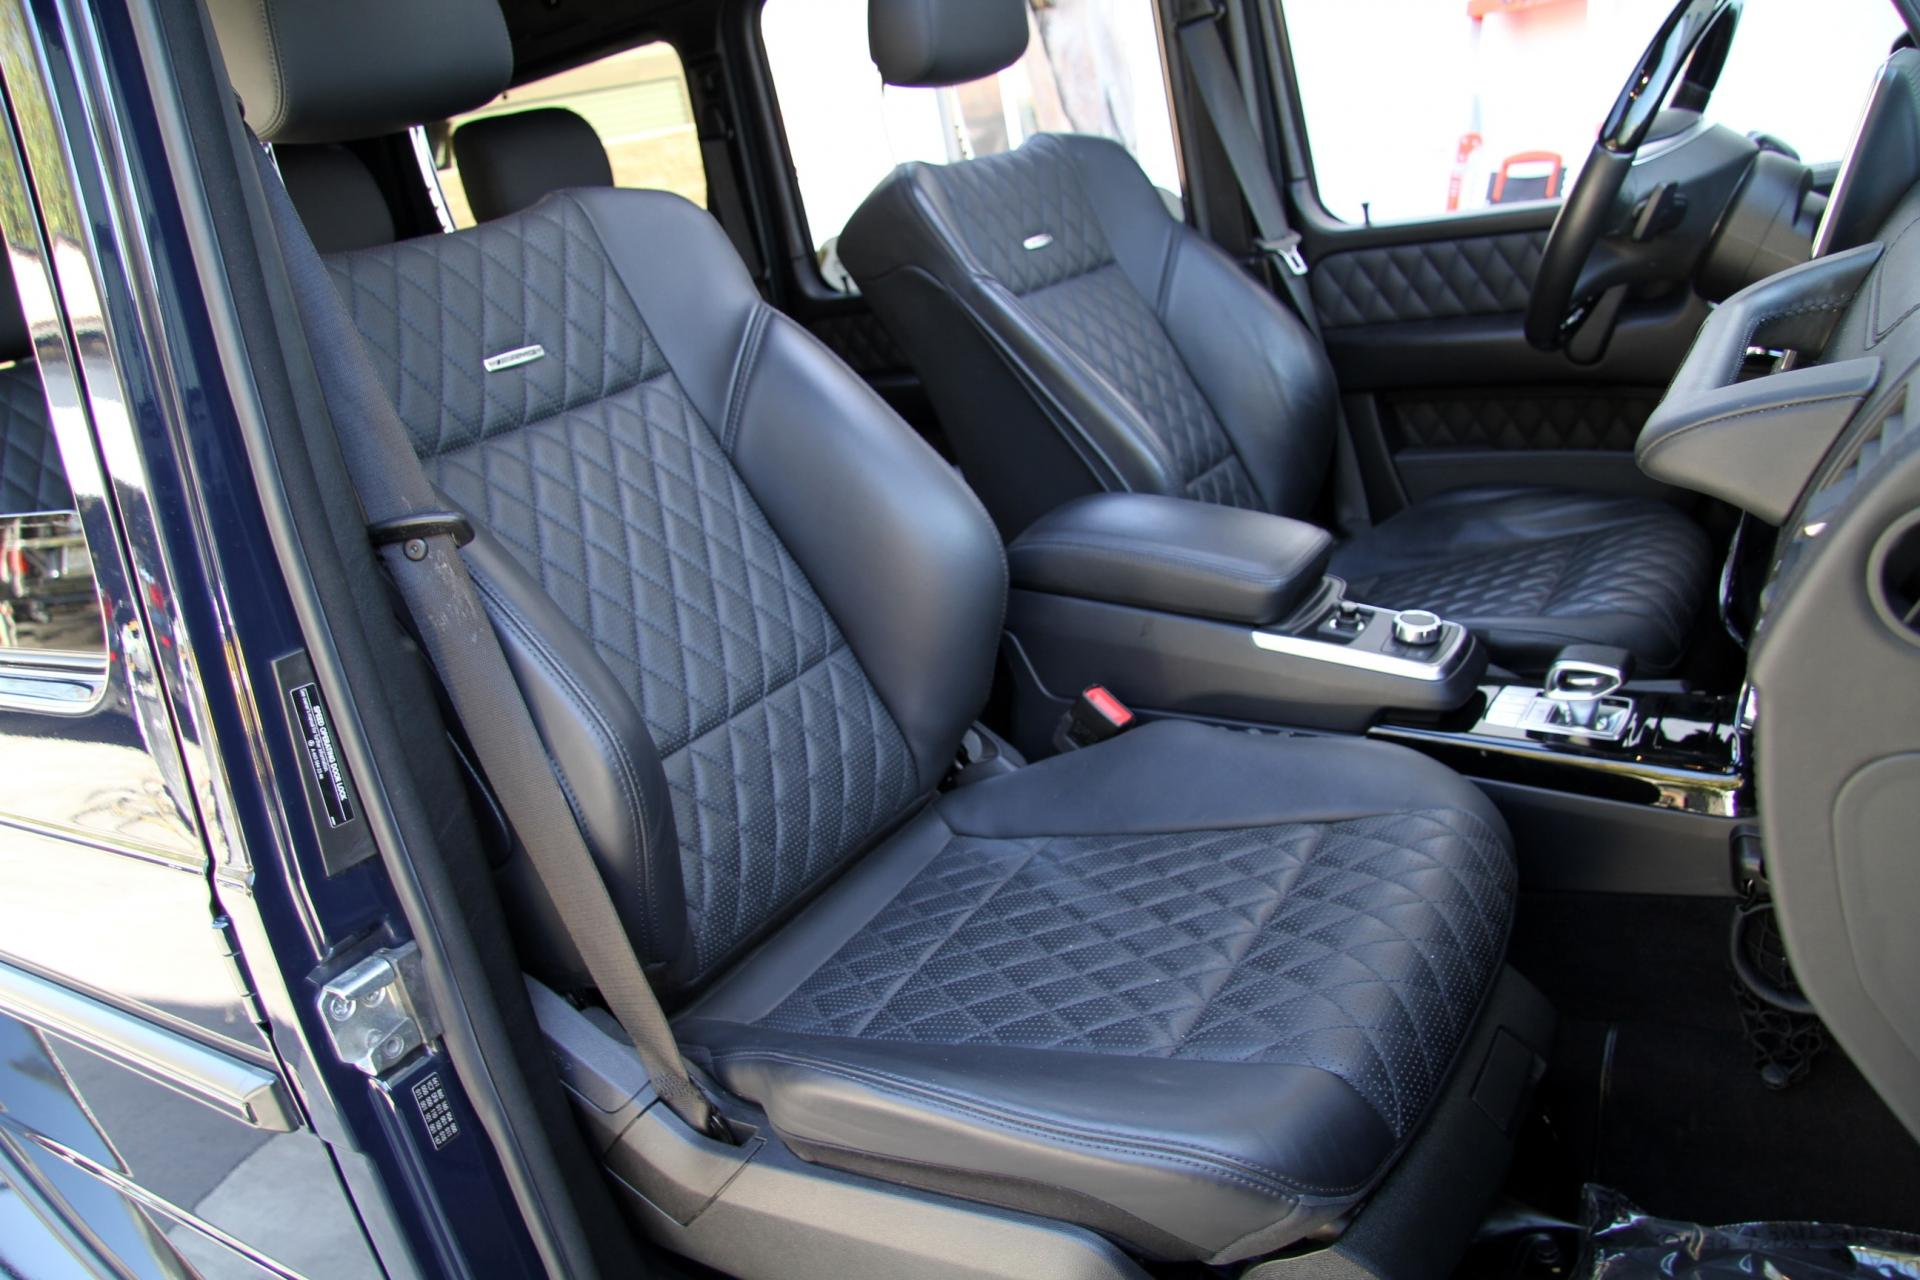 Free Vehicle History Report By Vin >> 2015 Mercedes-Benz G63 AMG 4MATIC **Diamond Stitched Seats ...